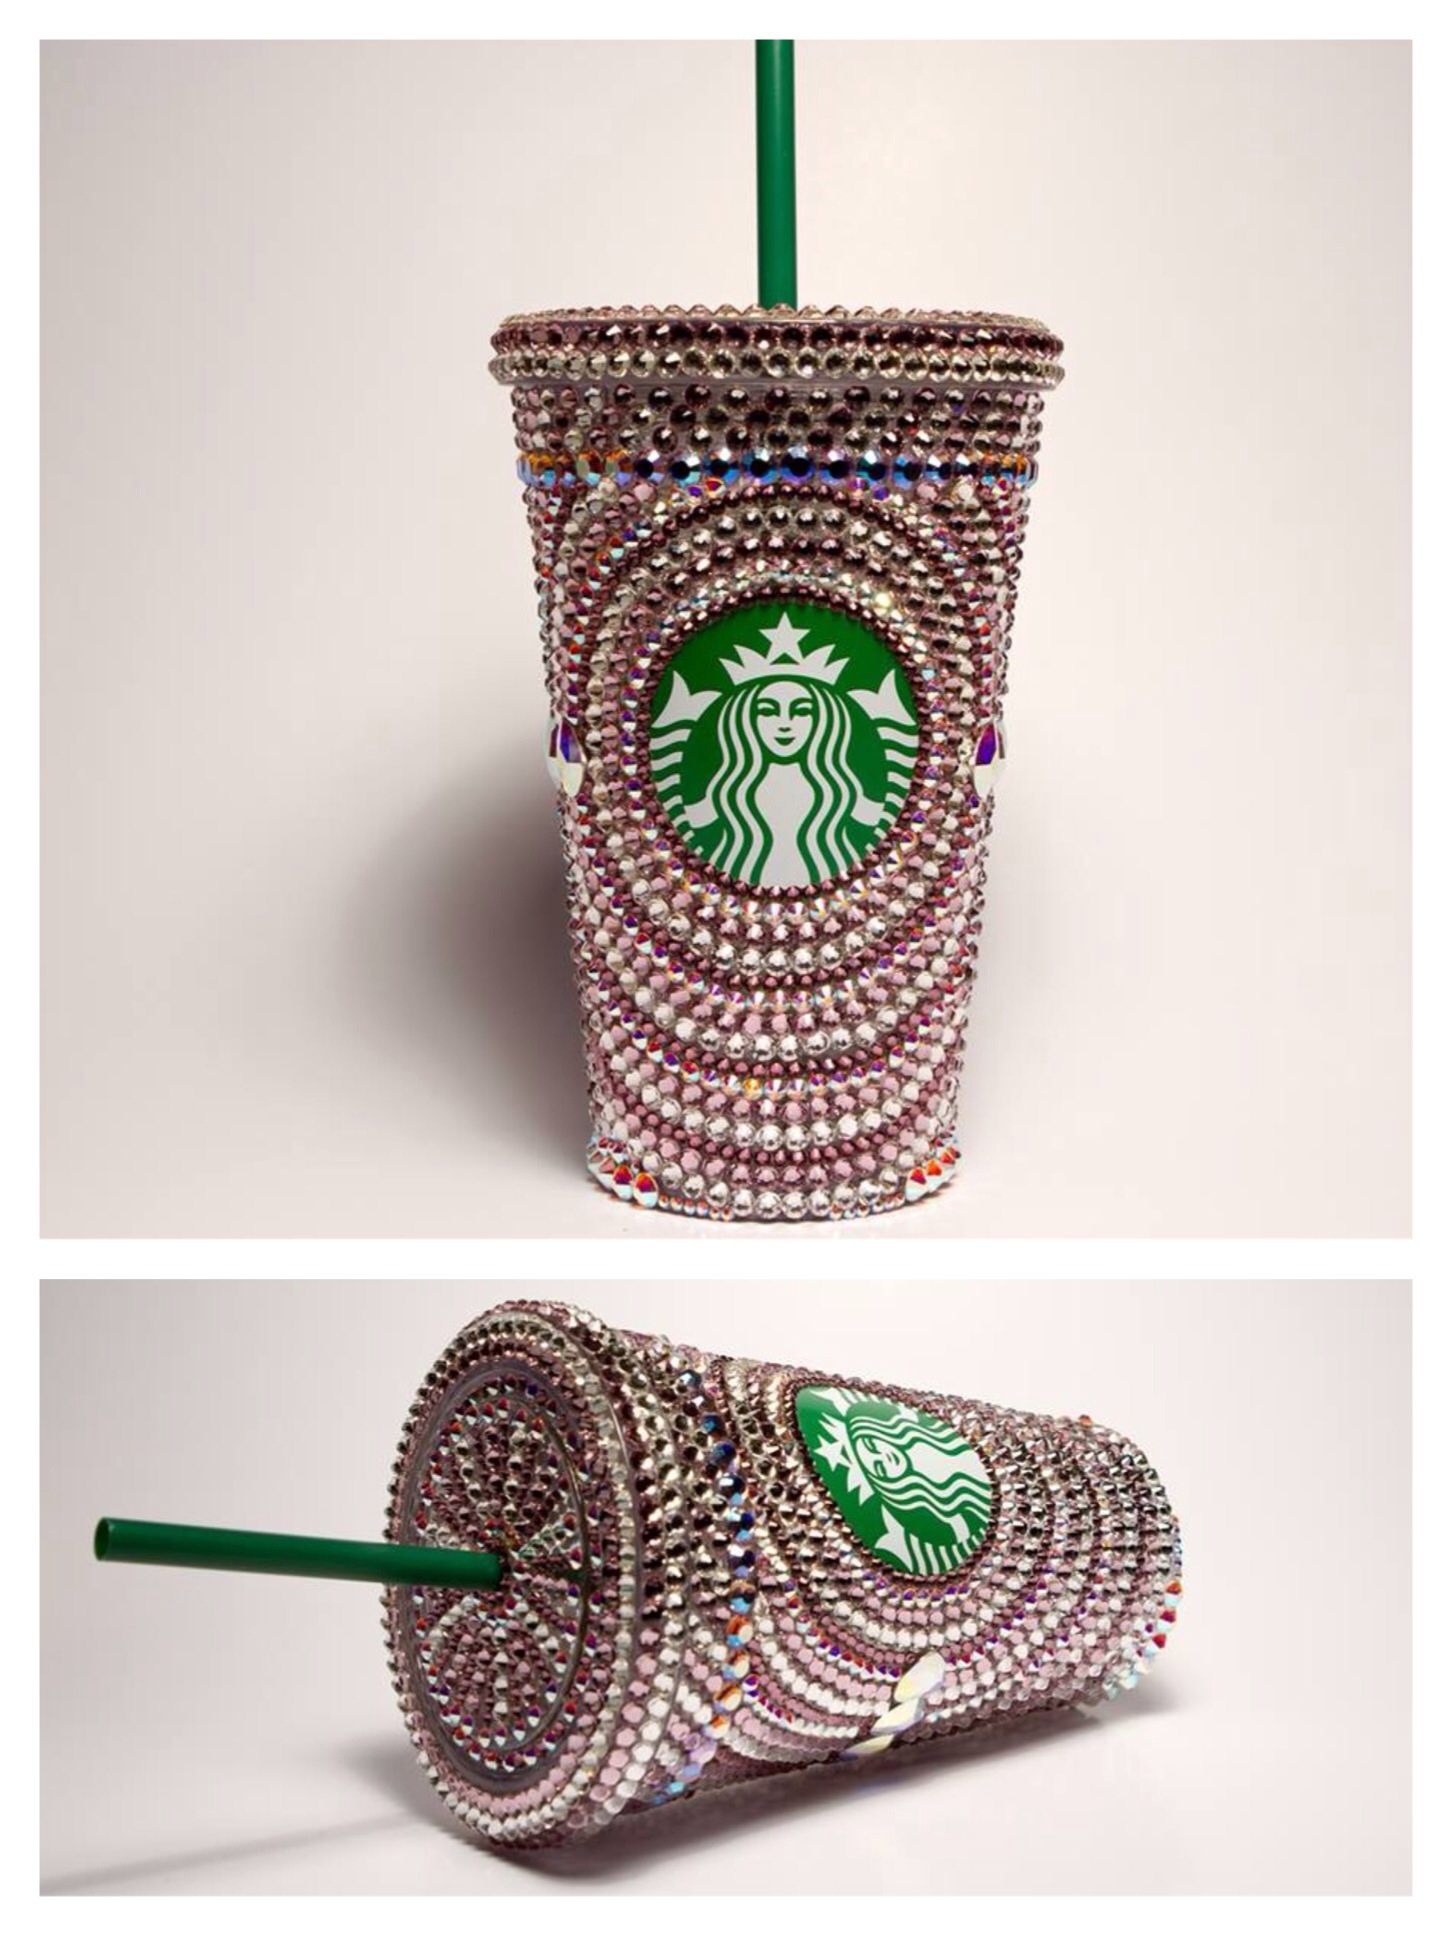 Swarovski Starbucks Cup 16oz Custom Made For Sale Hand Made With Over 2000 Crystals Starbucks Cups Cups And Mugs Starbucks Coffee